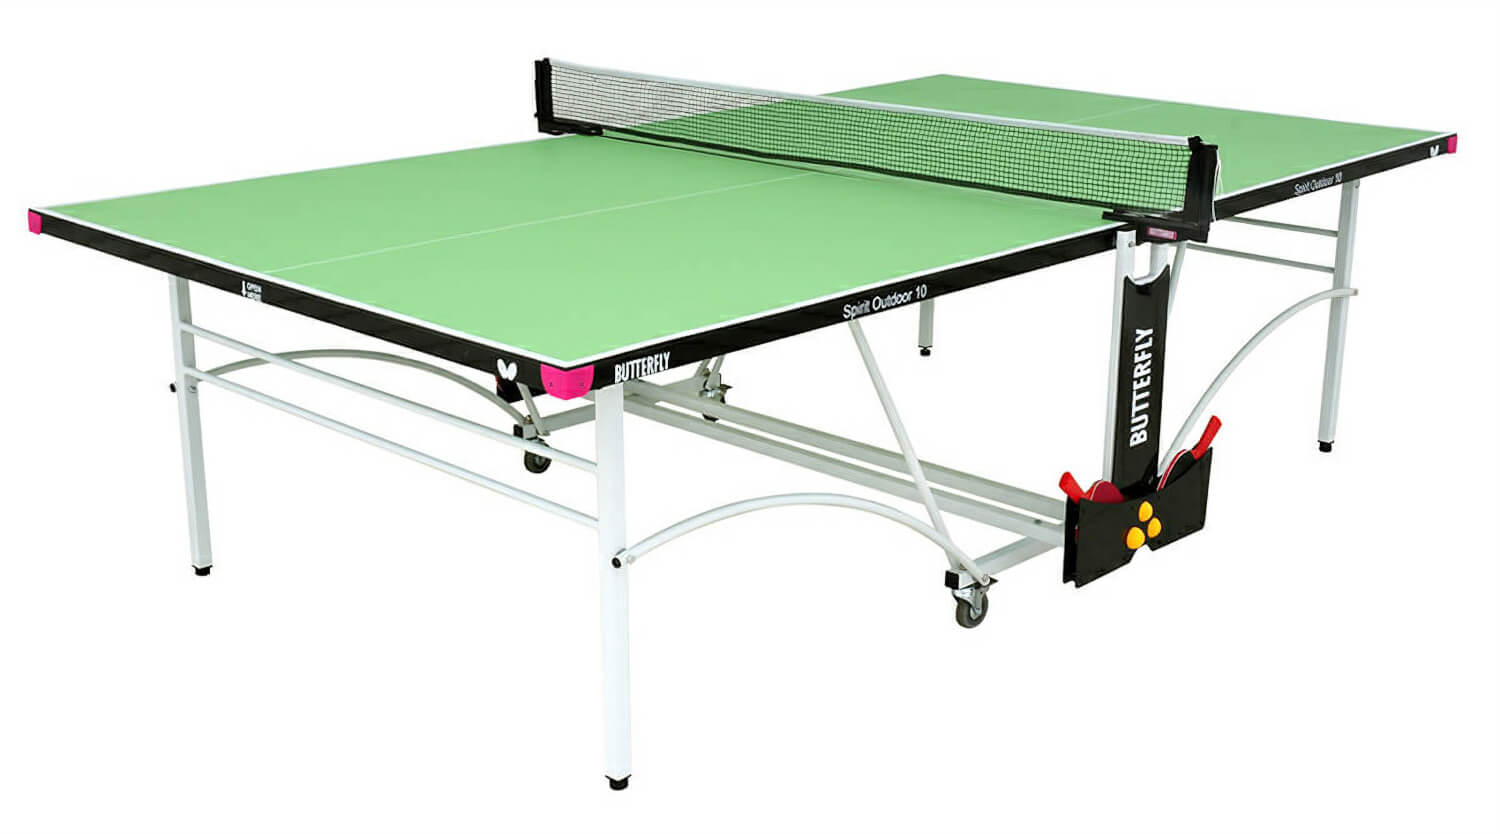 Spirit 10 outdoor tennis table liberty games - Weatherproof table tennis table ...